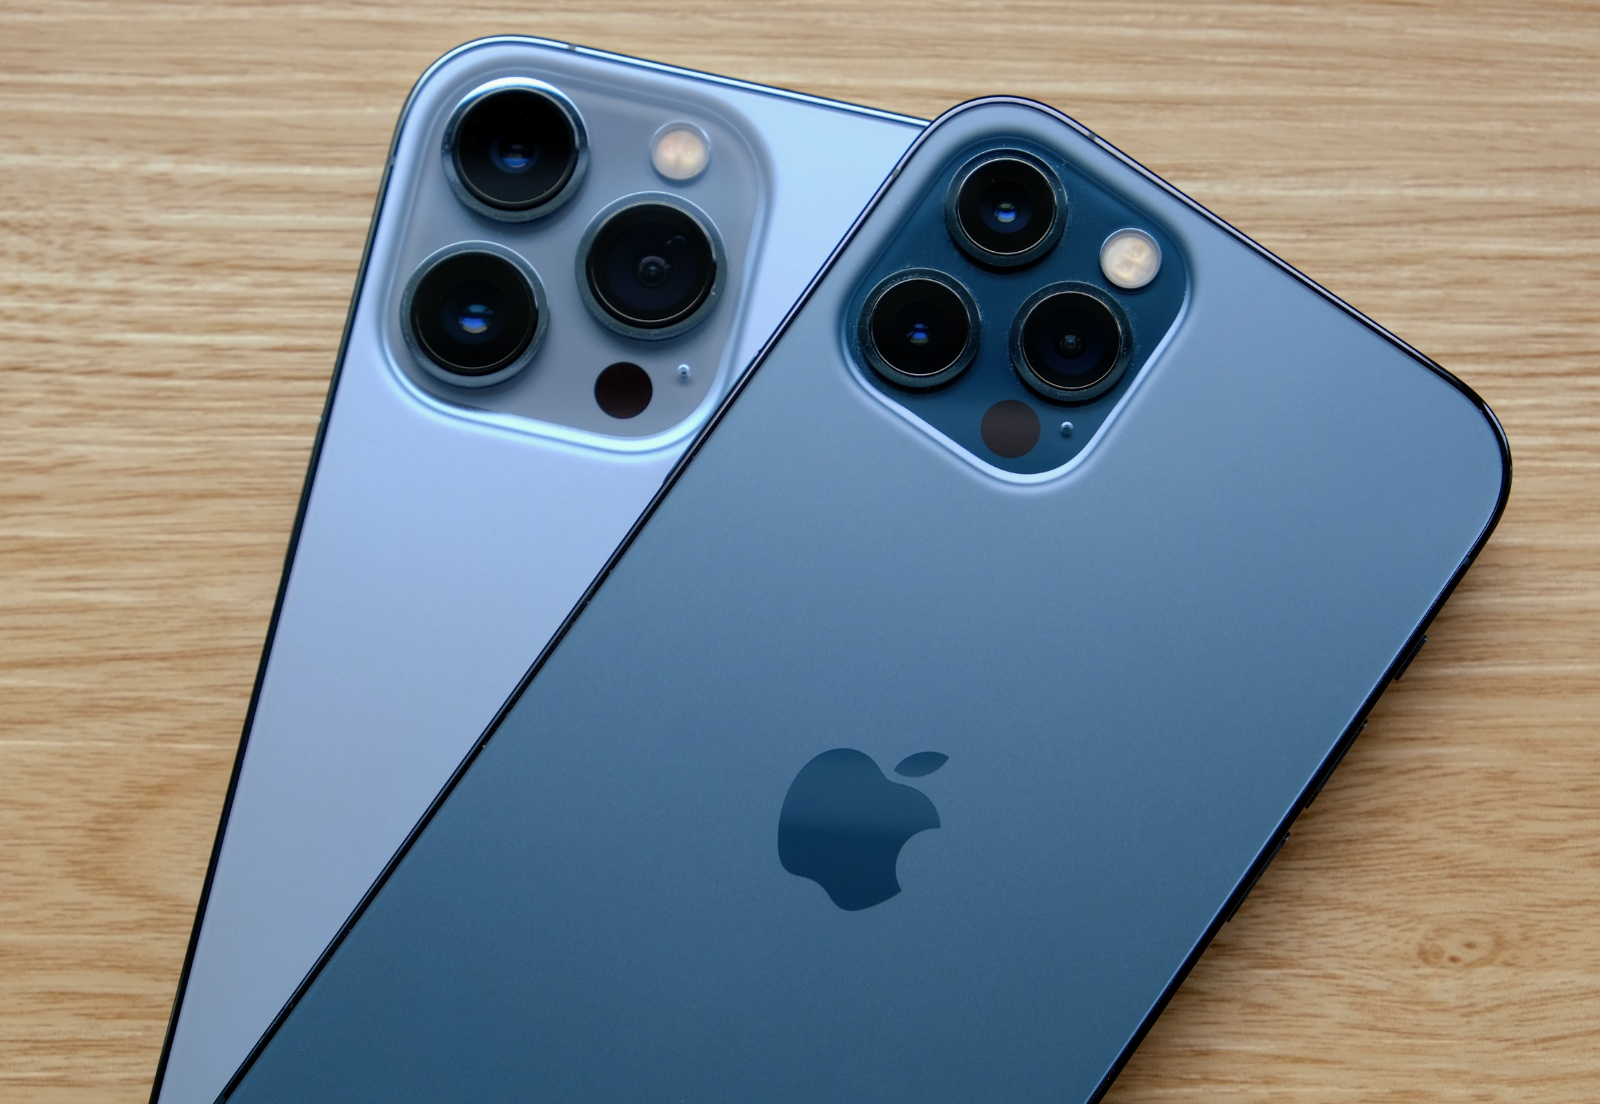 The iPhone 13 Pro Max in Sierra Blue below and the iPhone 12 Pro in Pacific Blue above.